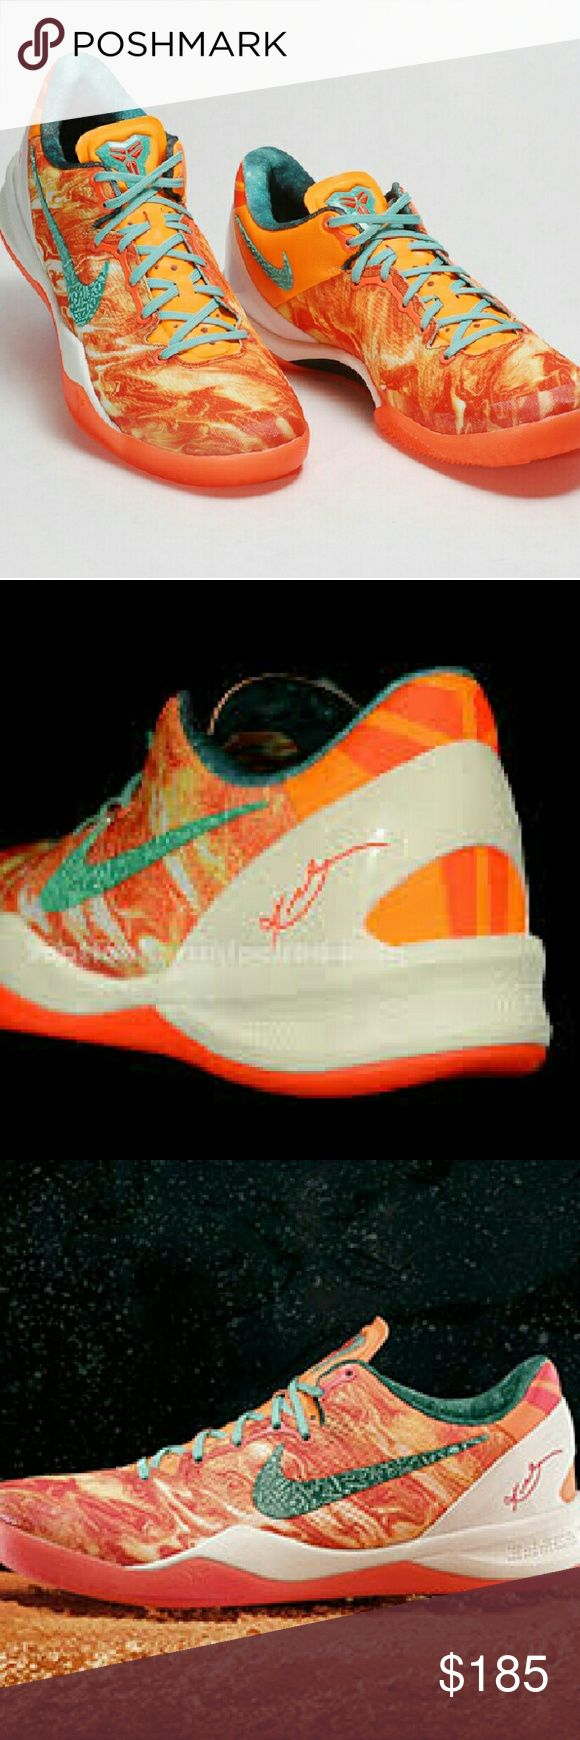 "Nike KOBE 8 System Sneaker The Houston-inspired Nike KOBE 8 System shoe for Kobe Bryant 'hails' from planet NSP-KB24 with a ""volatile surface.""? says size 7Youth, unisex and fits ladies size 9, men's size 7. Nike Shoes Athletic Shoes"